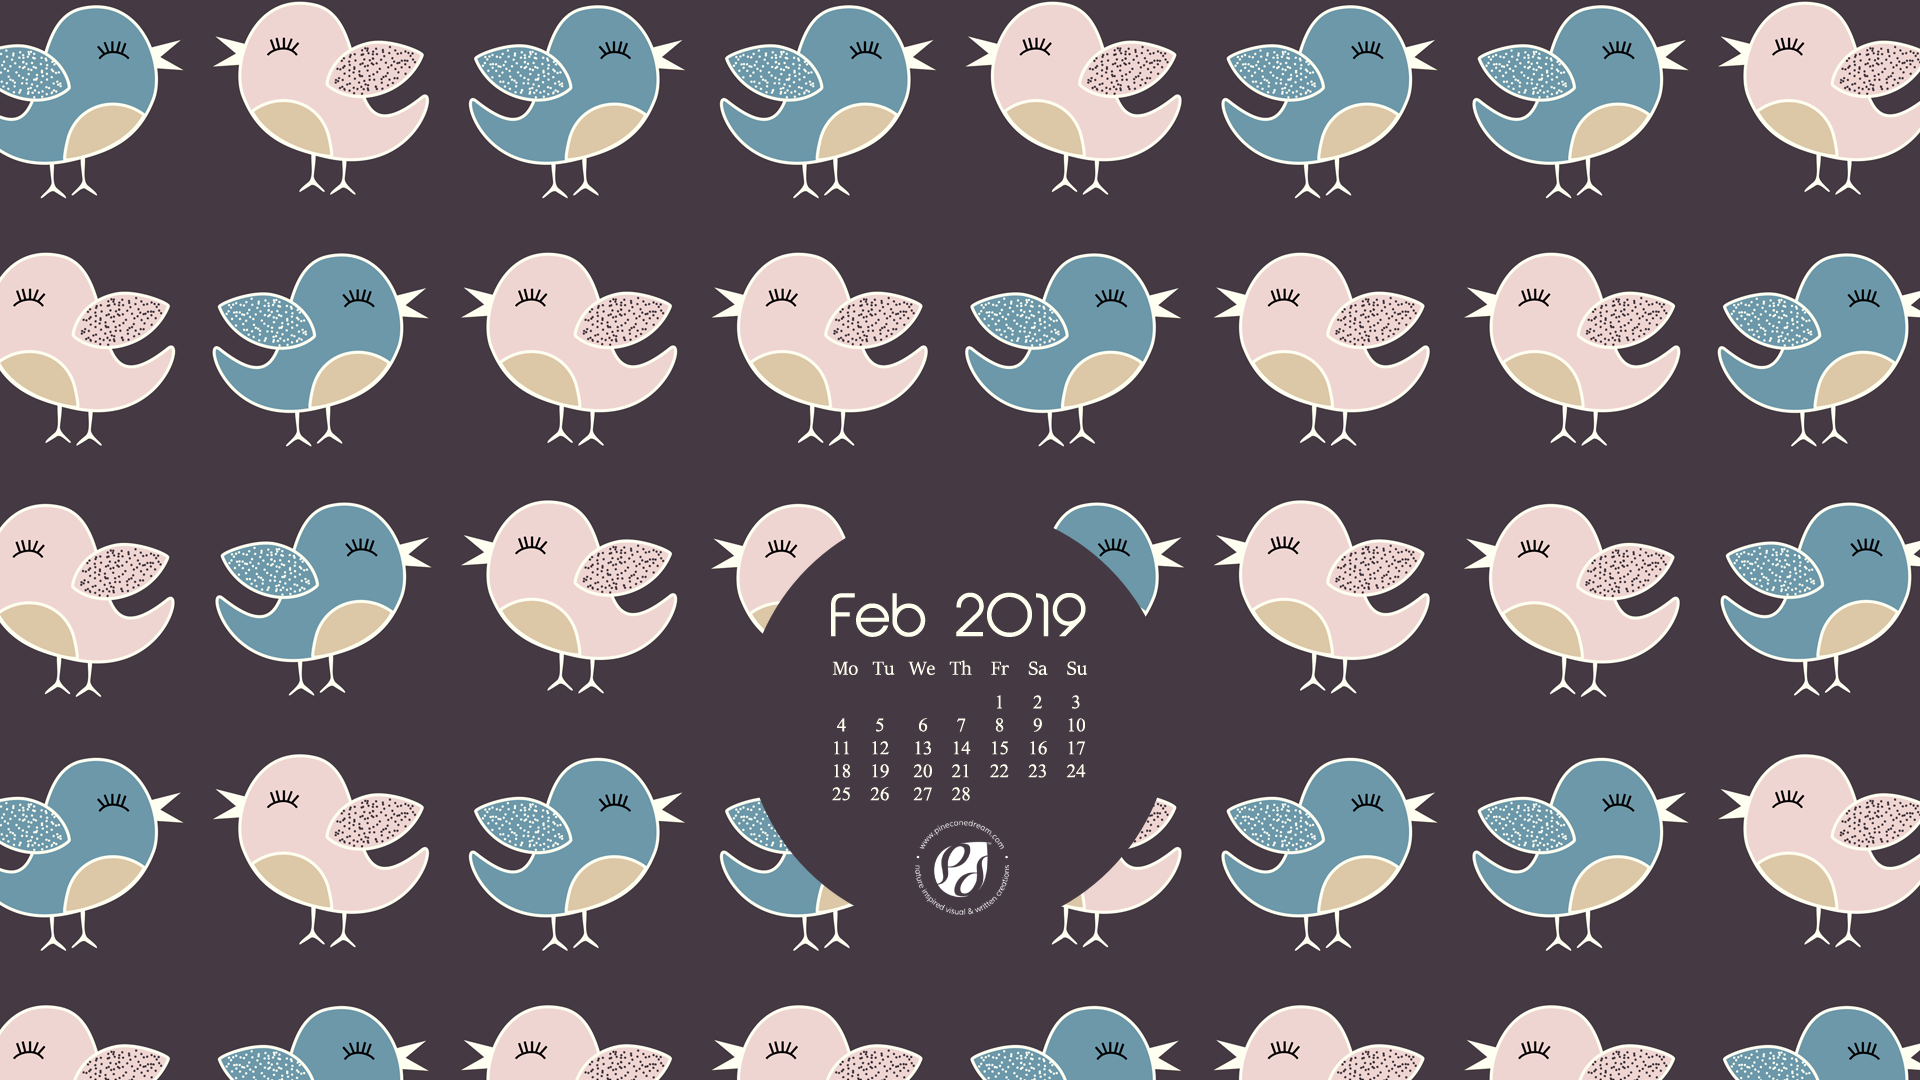 Feb 2019 free calendar wallpapers & planner illustrated